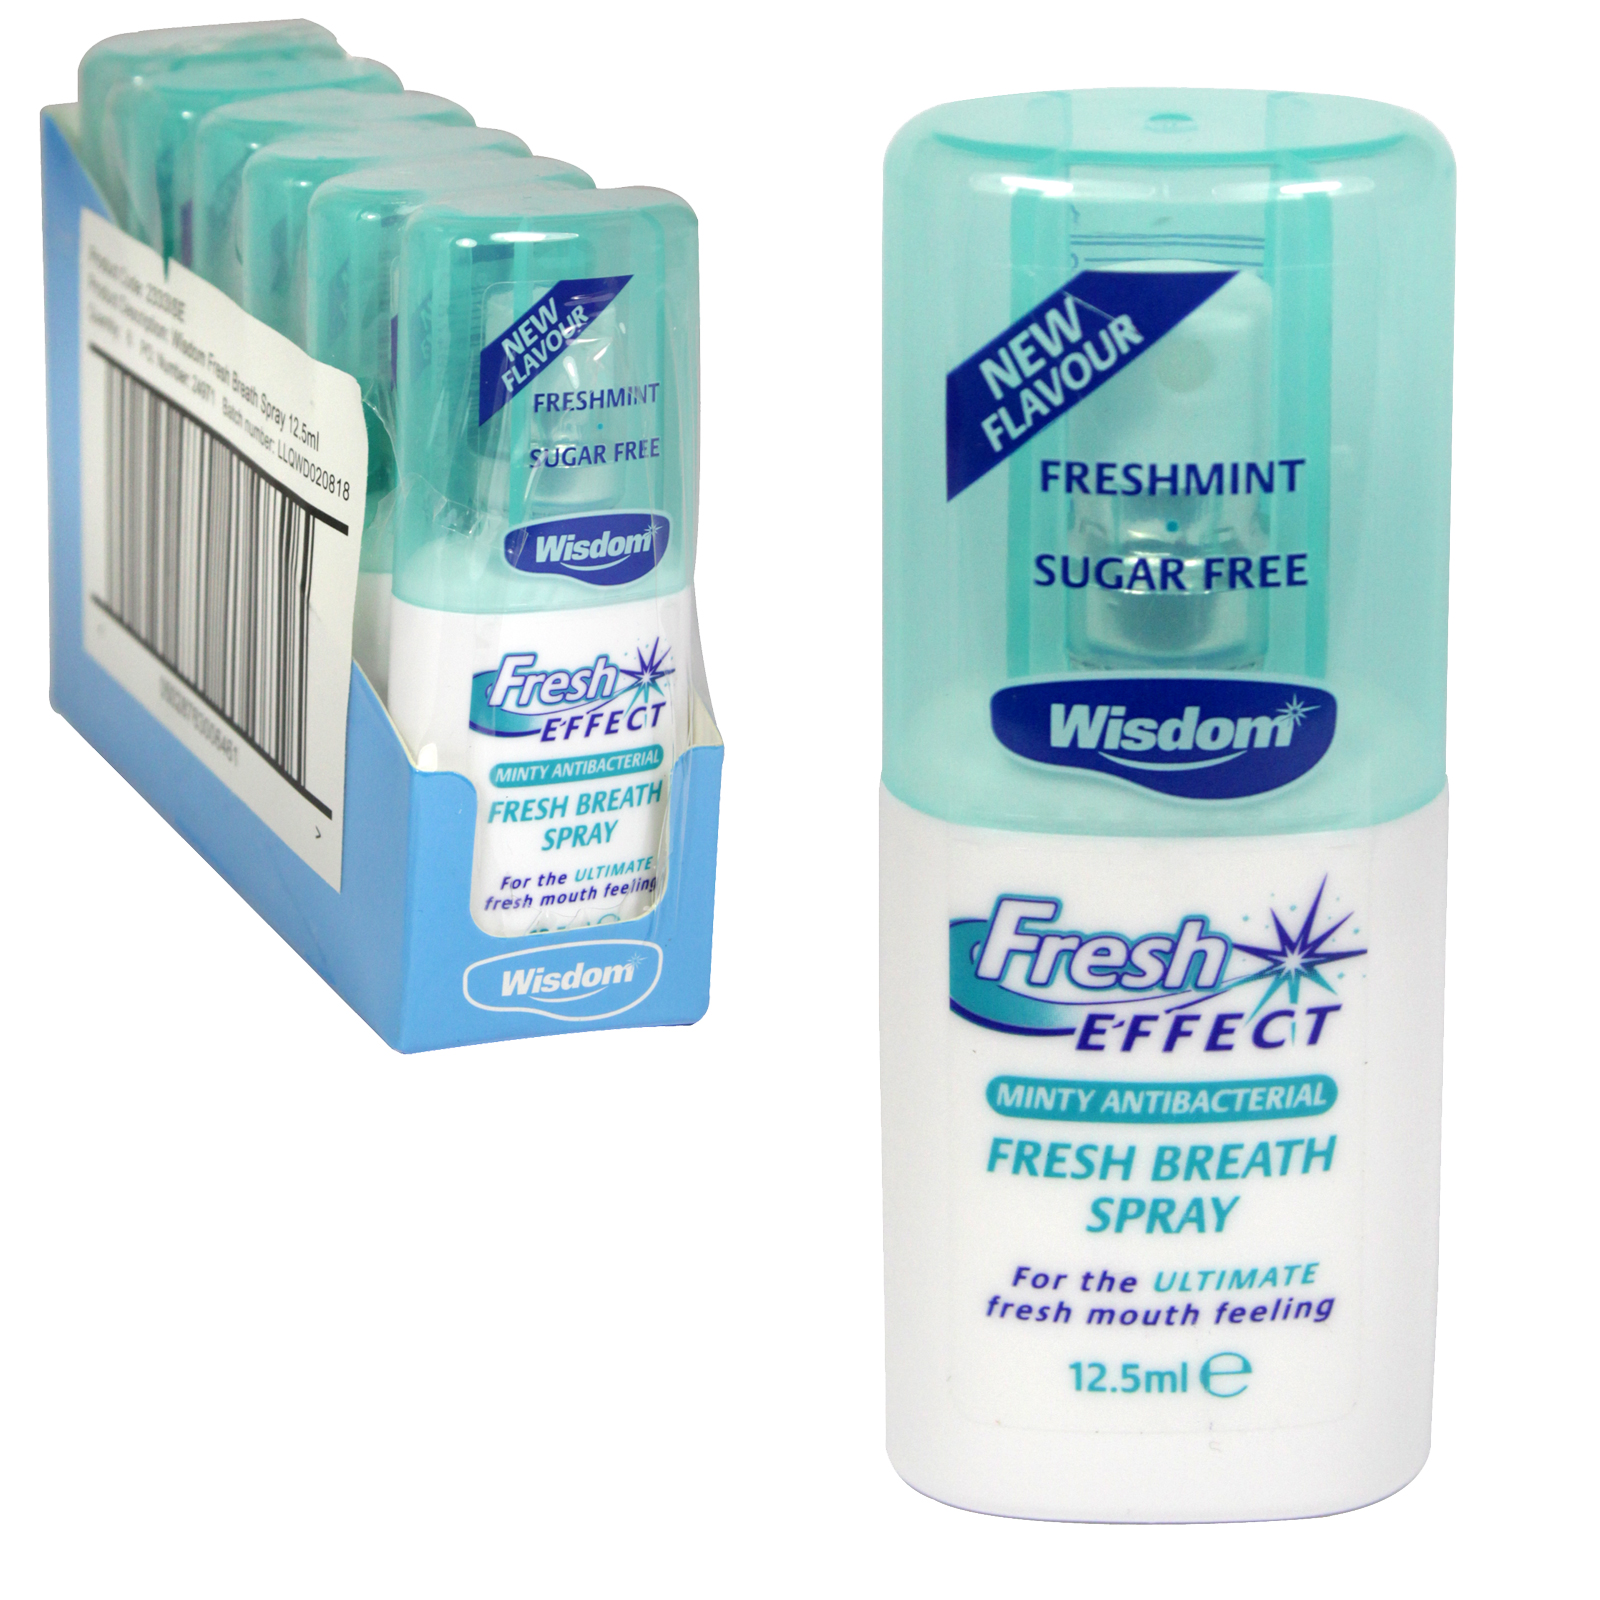 WISDOM FRESH EFFECT BREATH SPRAY 12.5ML X6